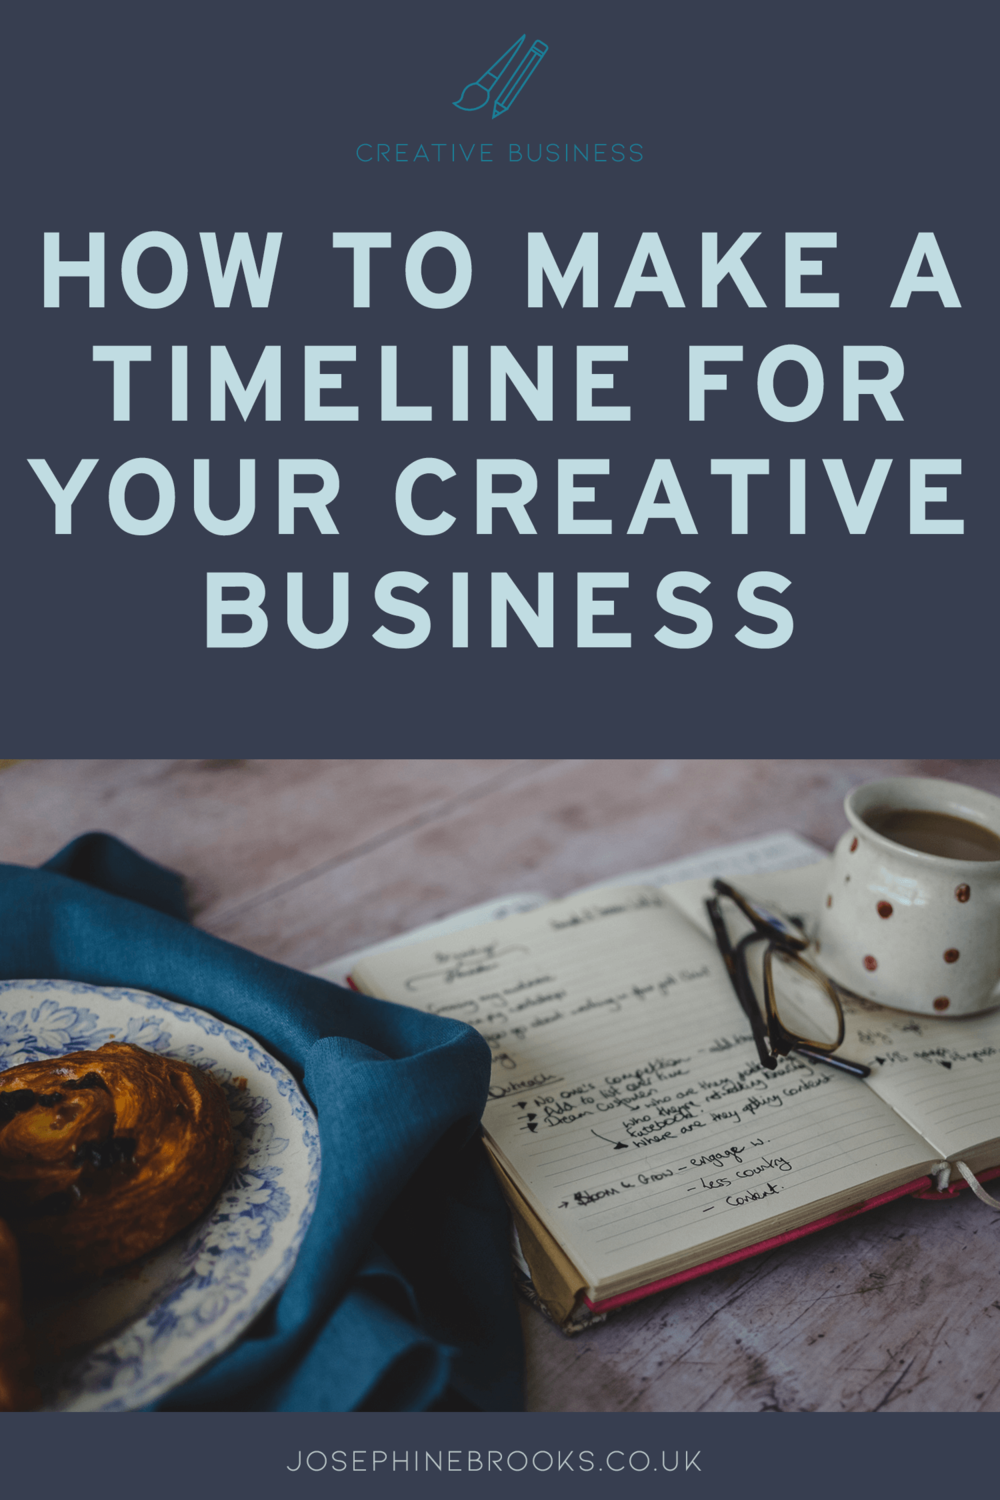 How to Make a timeline for your Handmade Business, Planning for Christmas in your handmade Business, Creative Business timeline planning